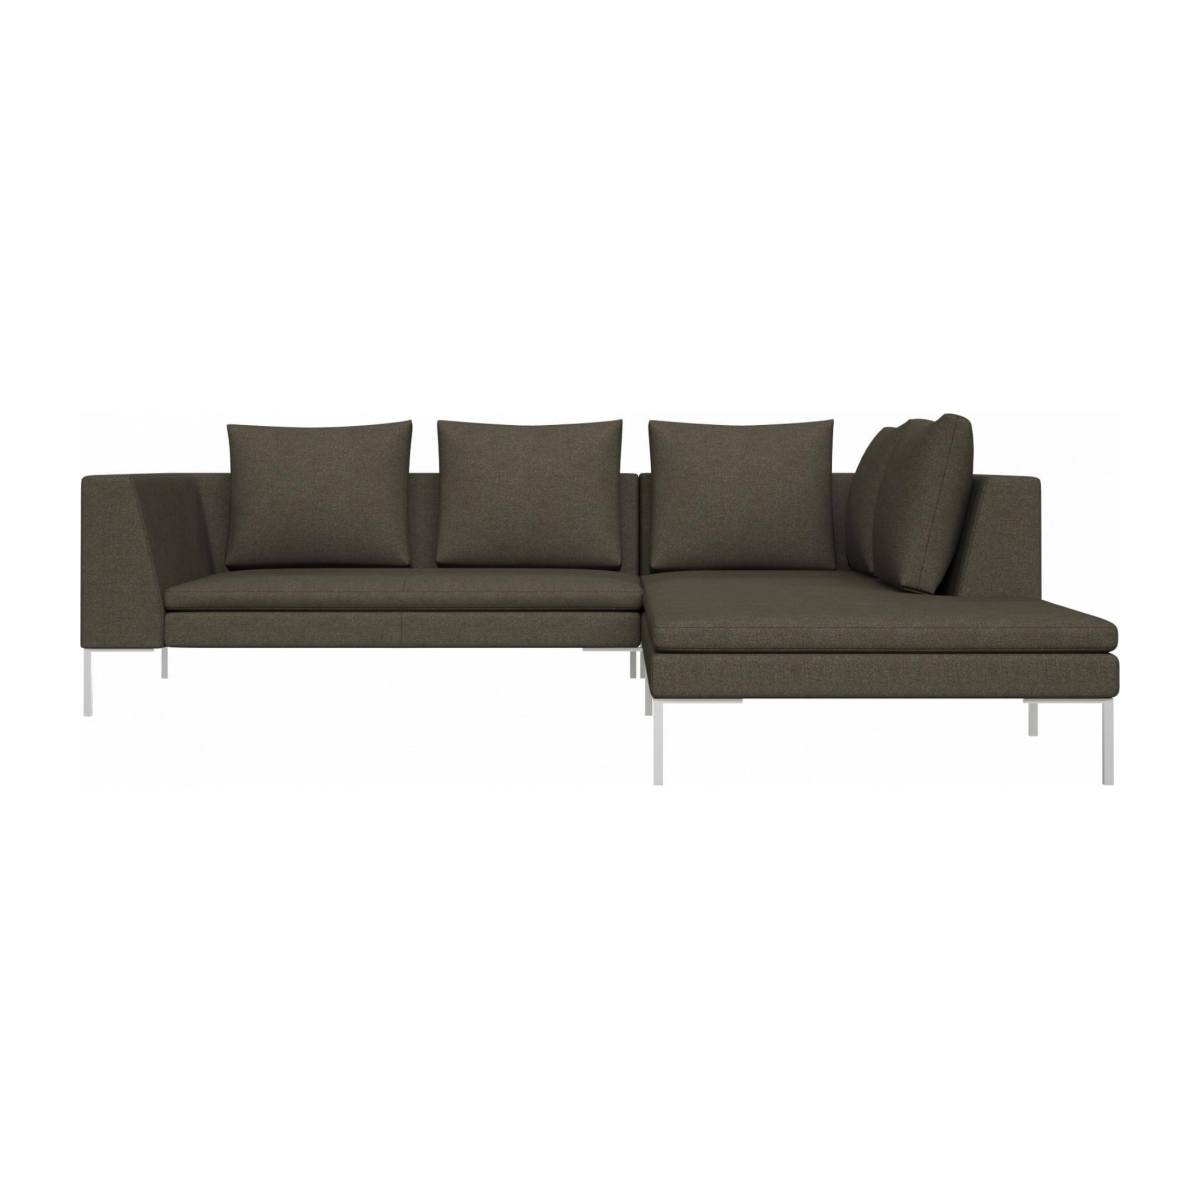 2 seater sofa with chaise longue on the right in Lecce fabric, slade grey  n°1